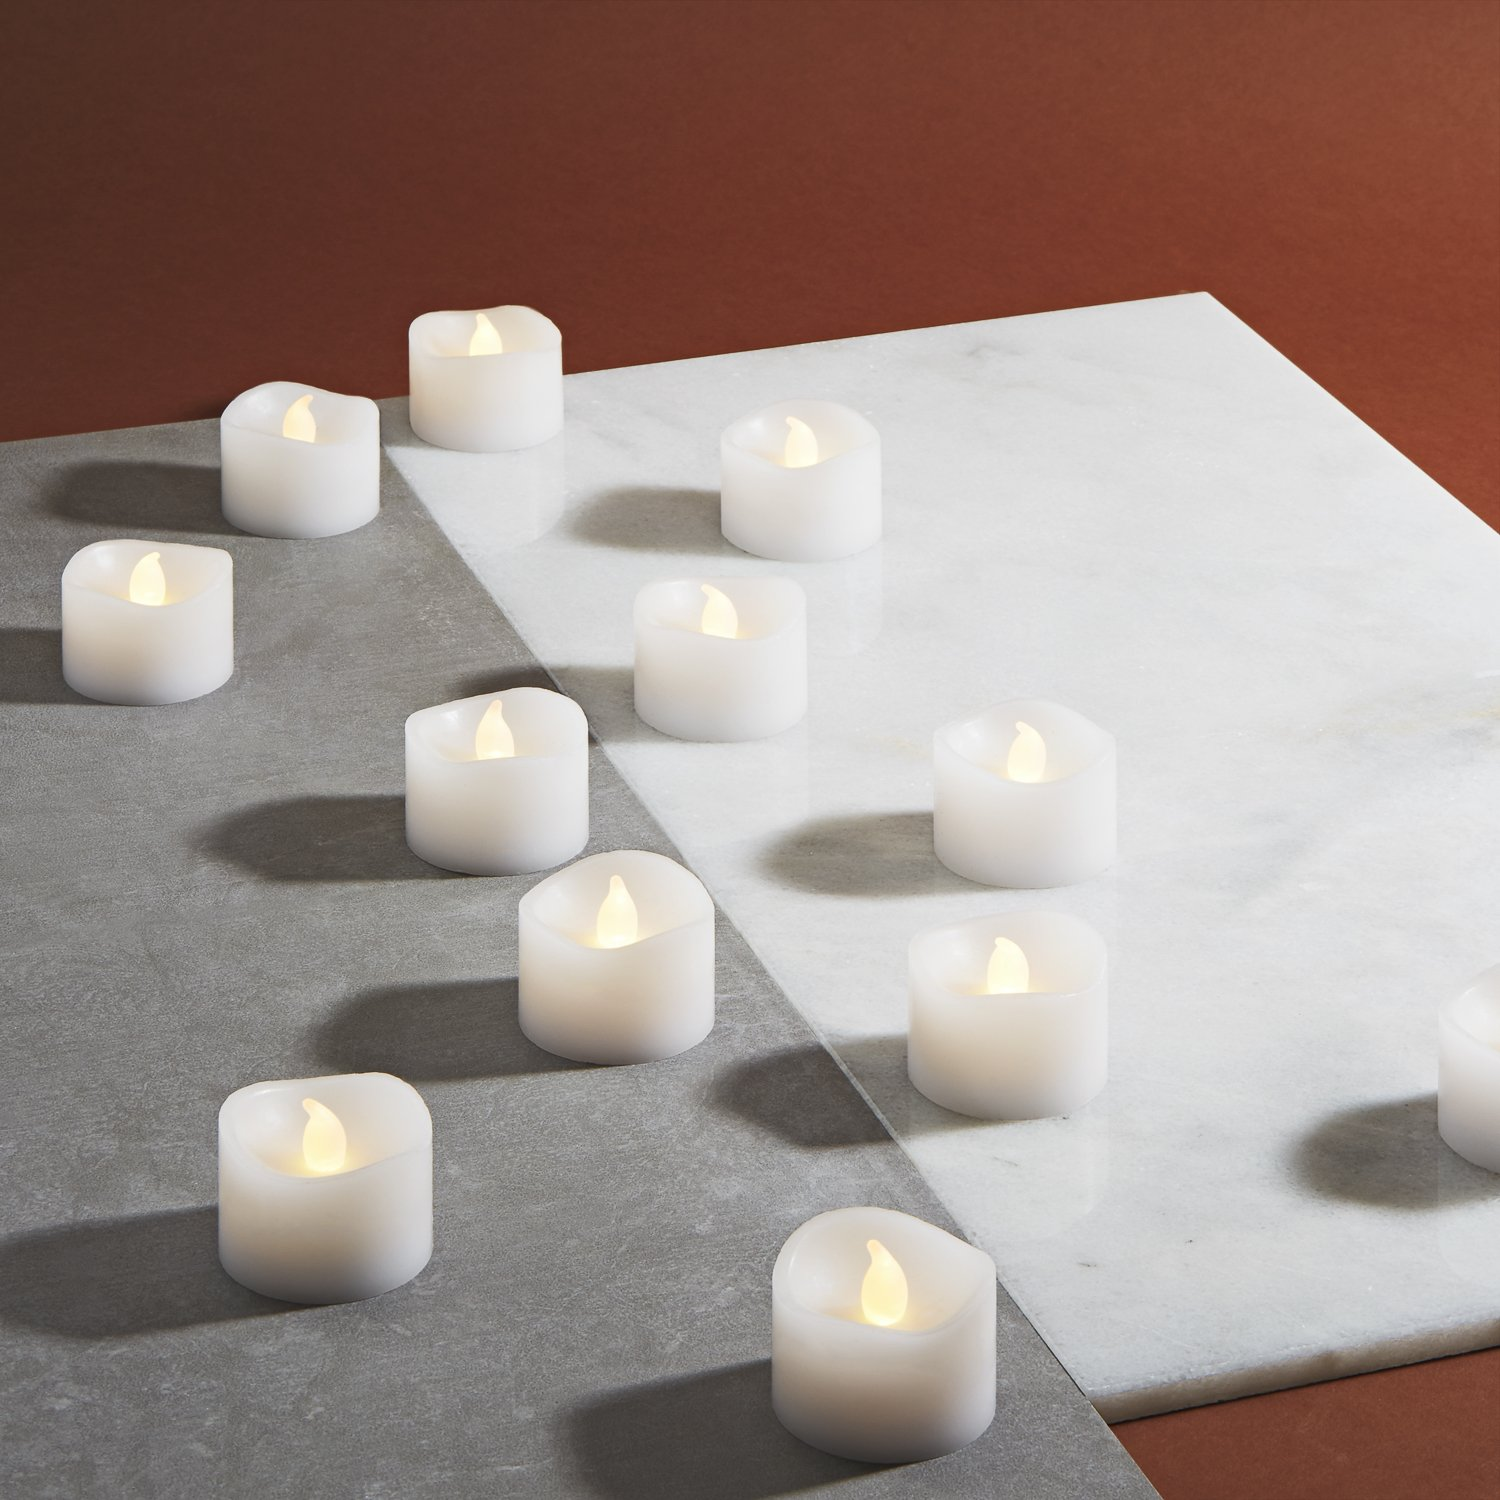 LampLust White Flameless Tea Light Candles, Warm White Glowing LEDs, Smooth Wax, Set of 12, Batteries & Remote Included